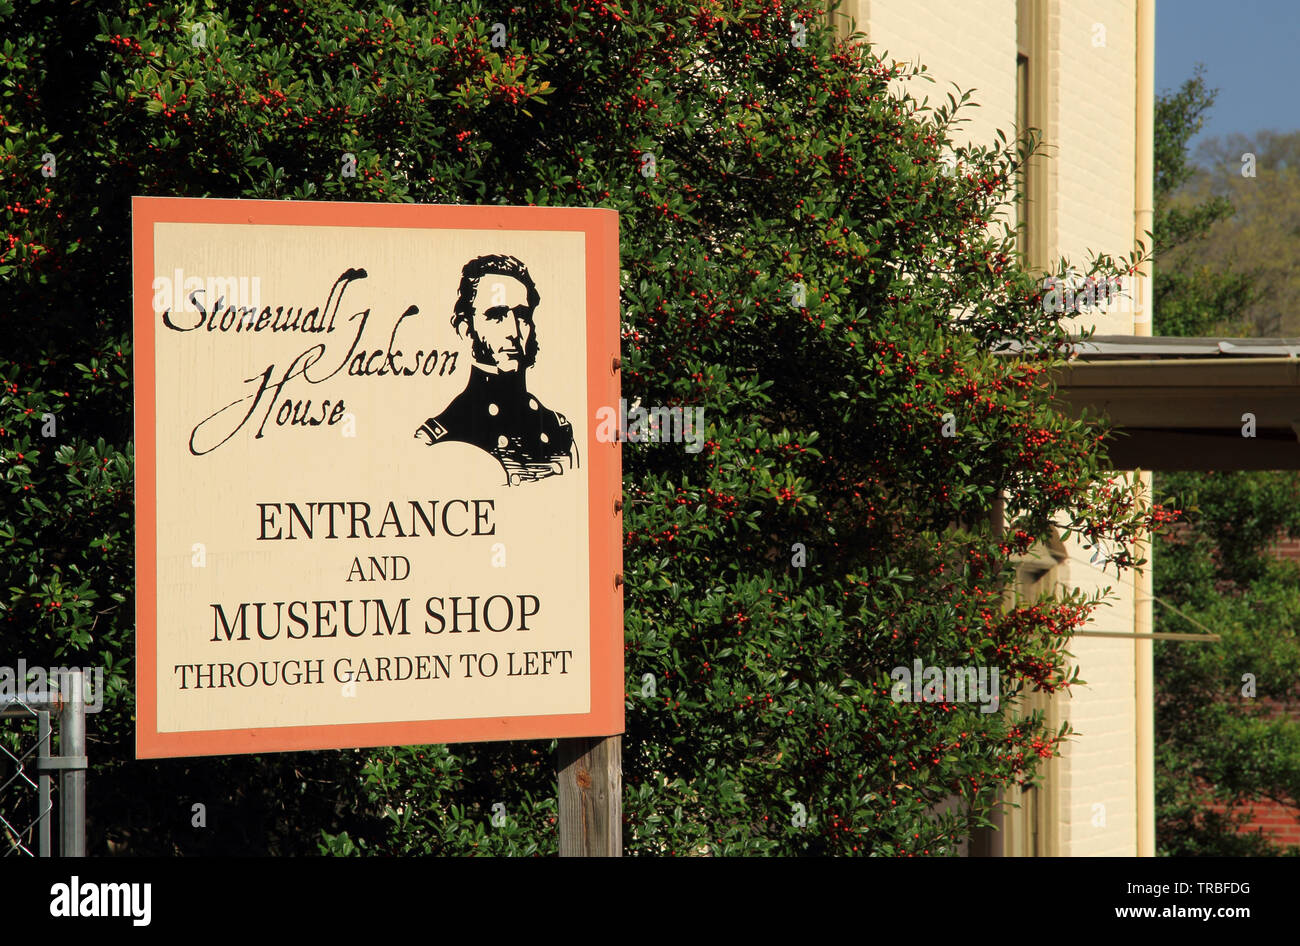 The Stonewall Jackson House, pictured here, is a prominent landmark and popular tourist attraction in the historic town of Lexington Virginia Stock Photo